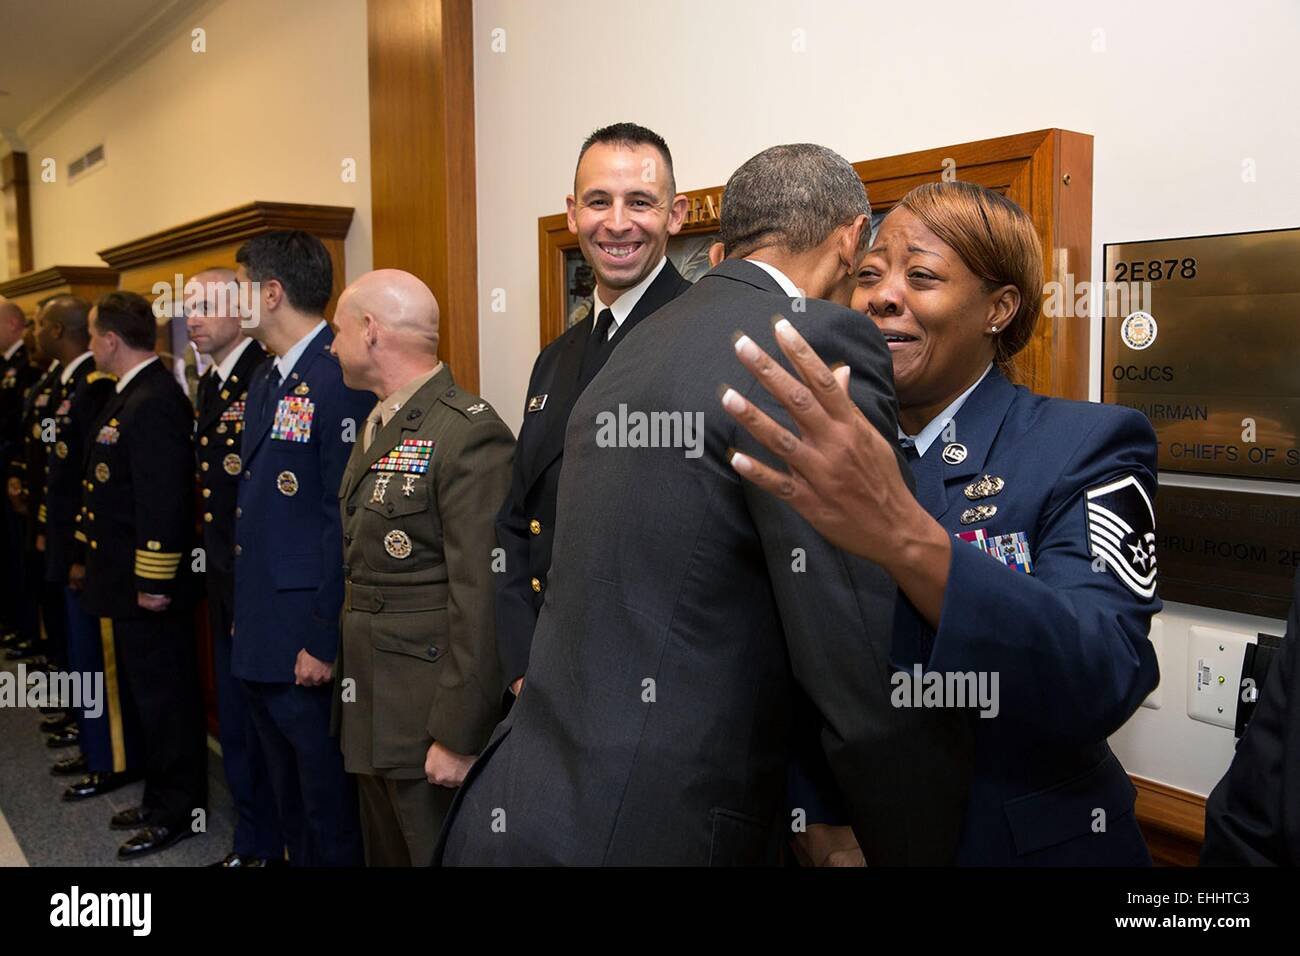 US President Barack Obama greets U.S. service members at the Pentagon October 8, 2014 in Arlington, Virginia. - Stock Image